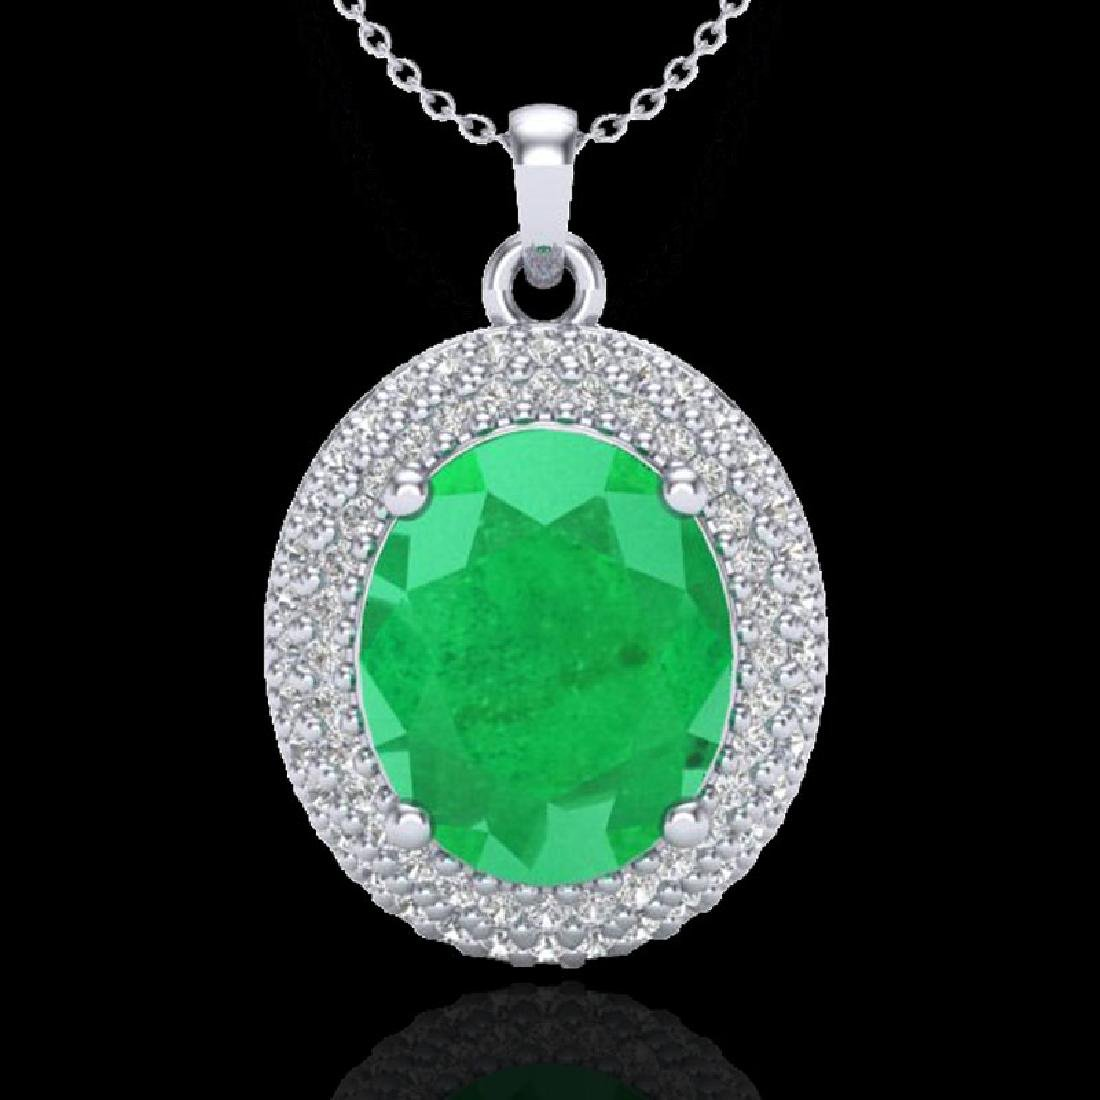 4.50 CTW Emerald & Micro Pave VS/SI Diamond Necklace